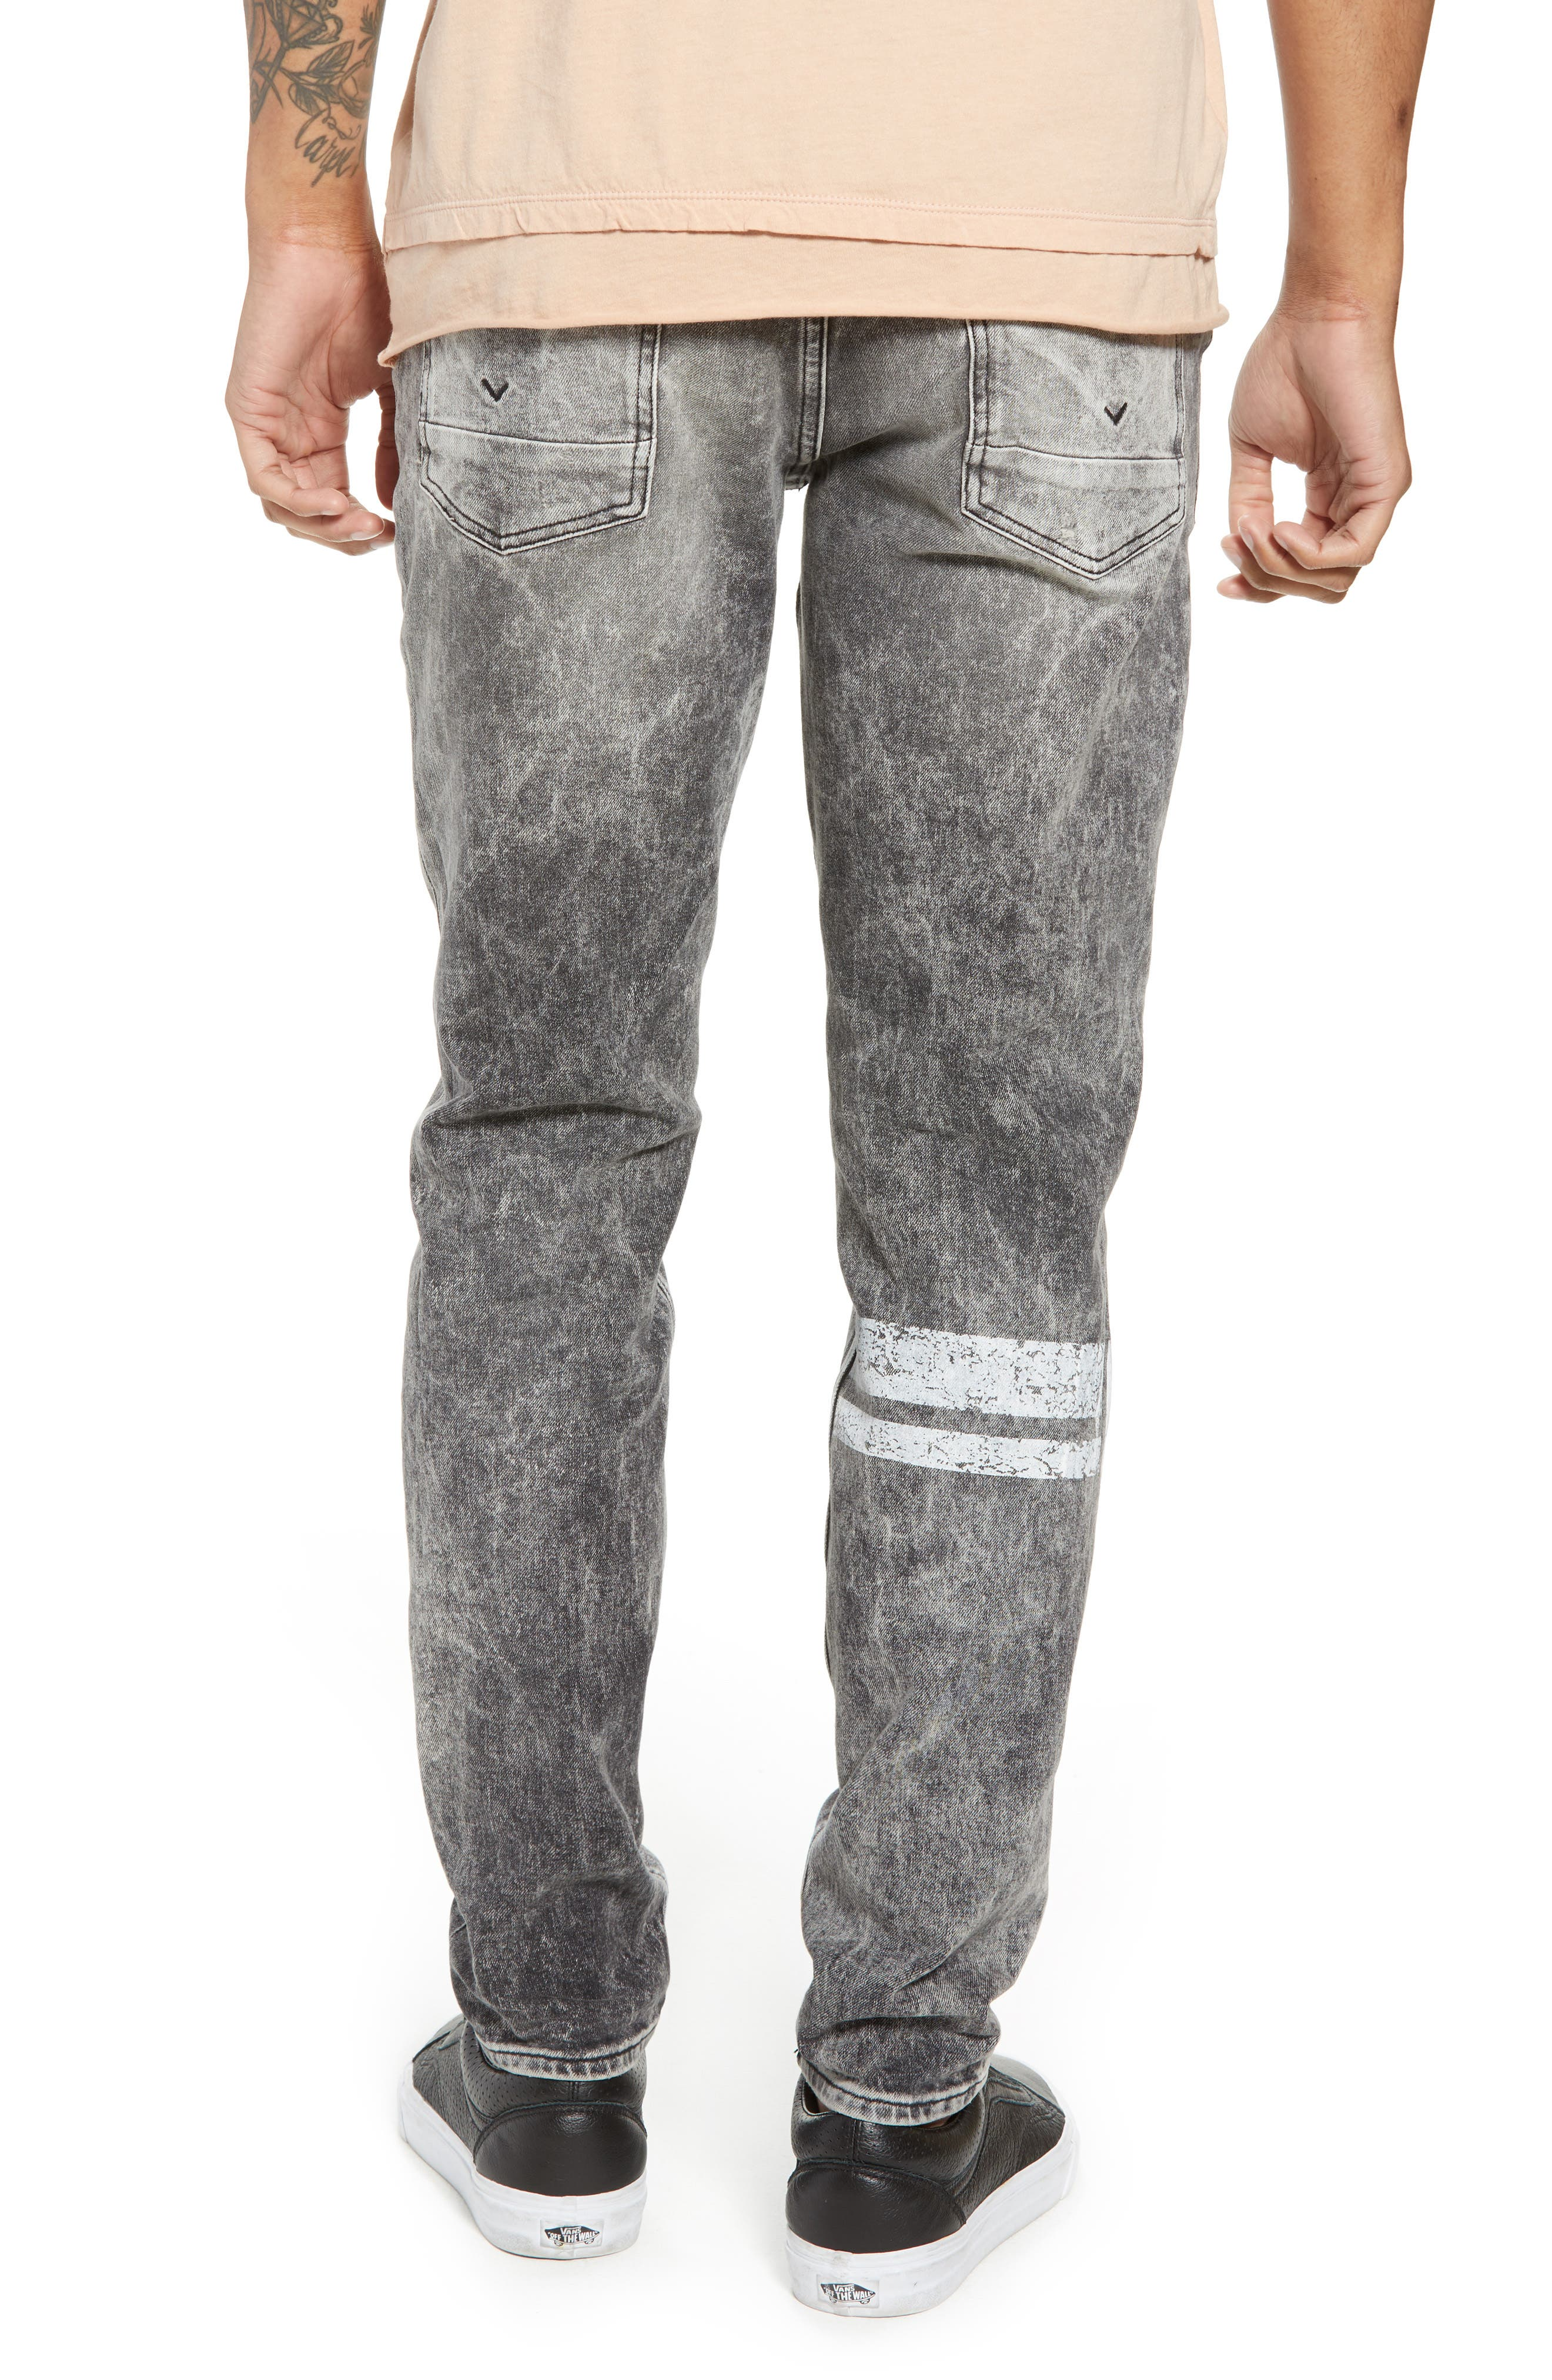 Sartor Slouchy Skinny Fit Jeans,                             Alternate thumbnail 2, color,                             Cut Copy